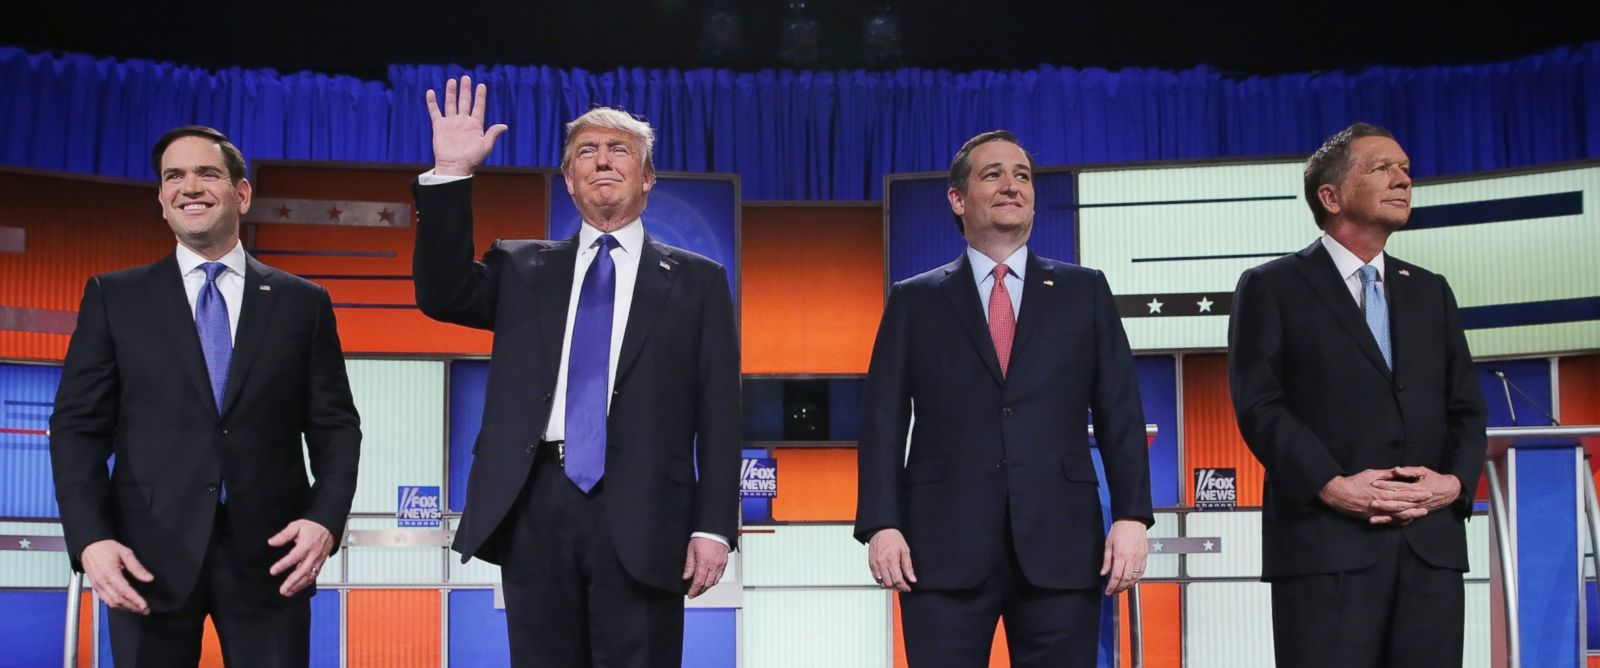 PHOTO: Republican presidential candidates Sen. Marco Rubio, Donald Trump, Sen. Ted Cruz, and Ohio Gov. John Kasich, participate in a debate sponsored by Fox News on March 3, 2016 in Detroit.